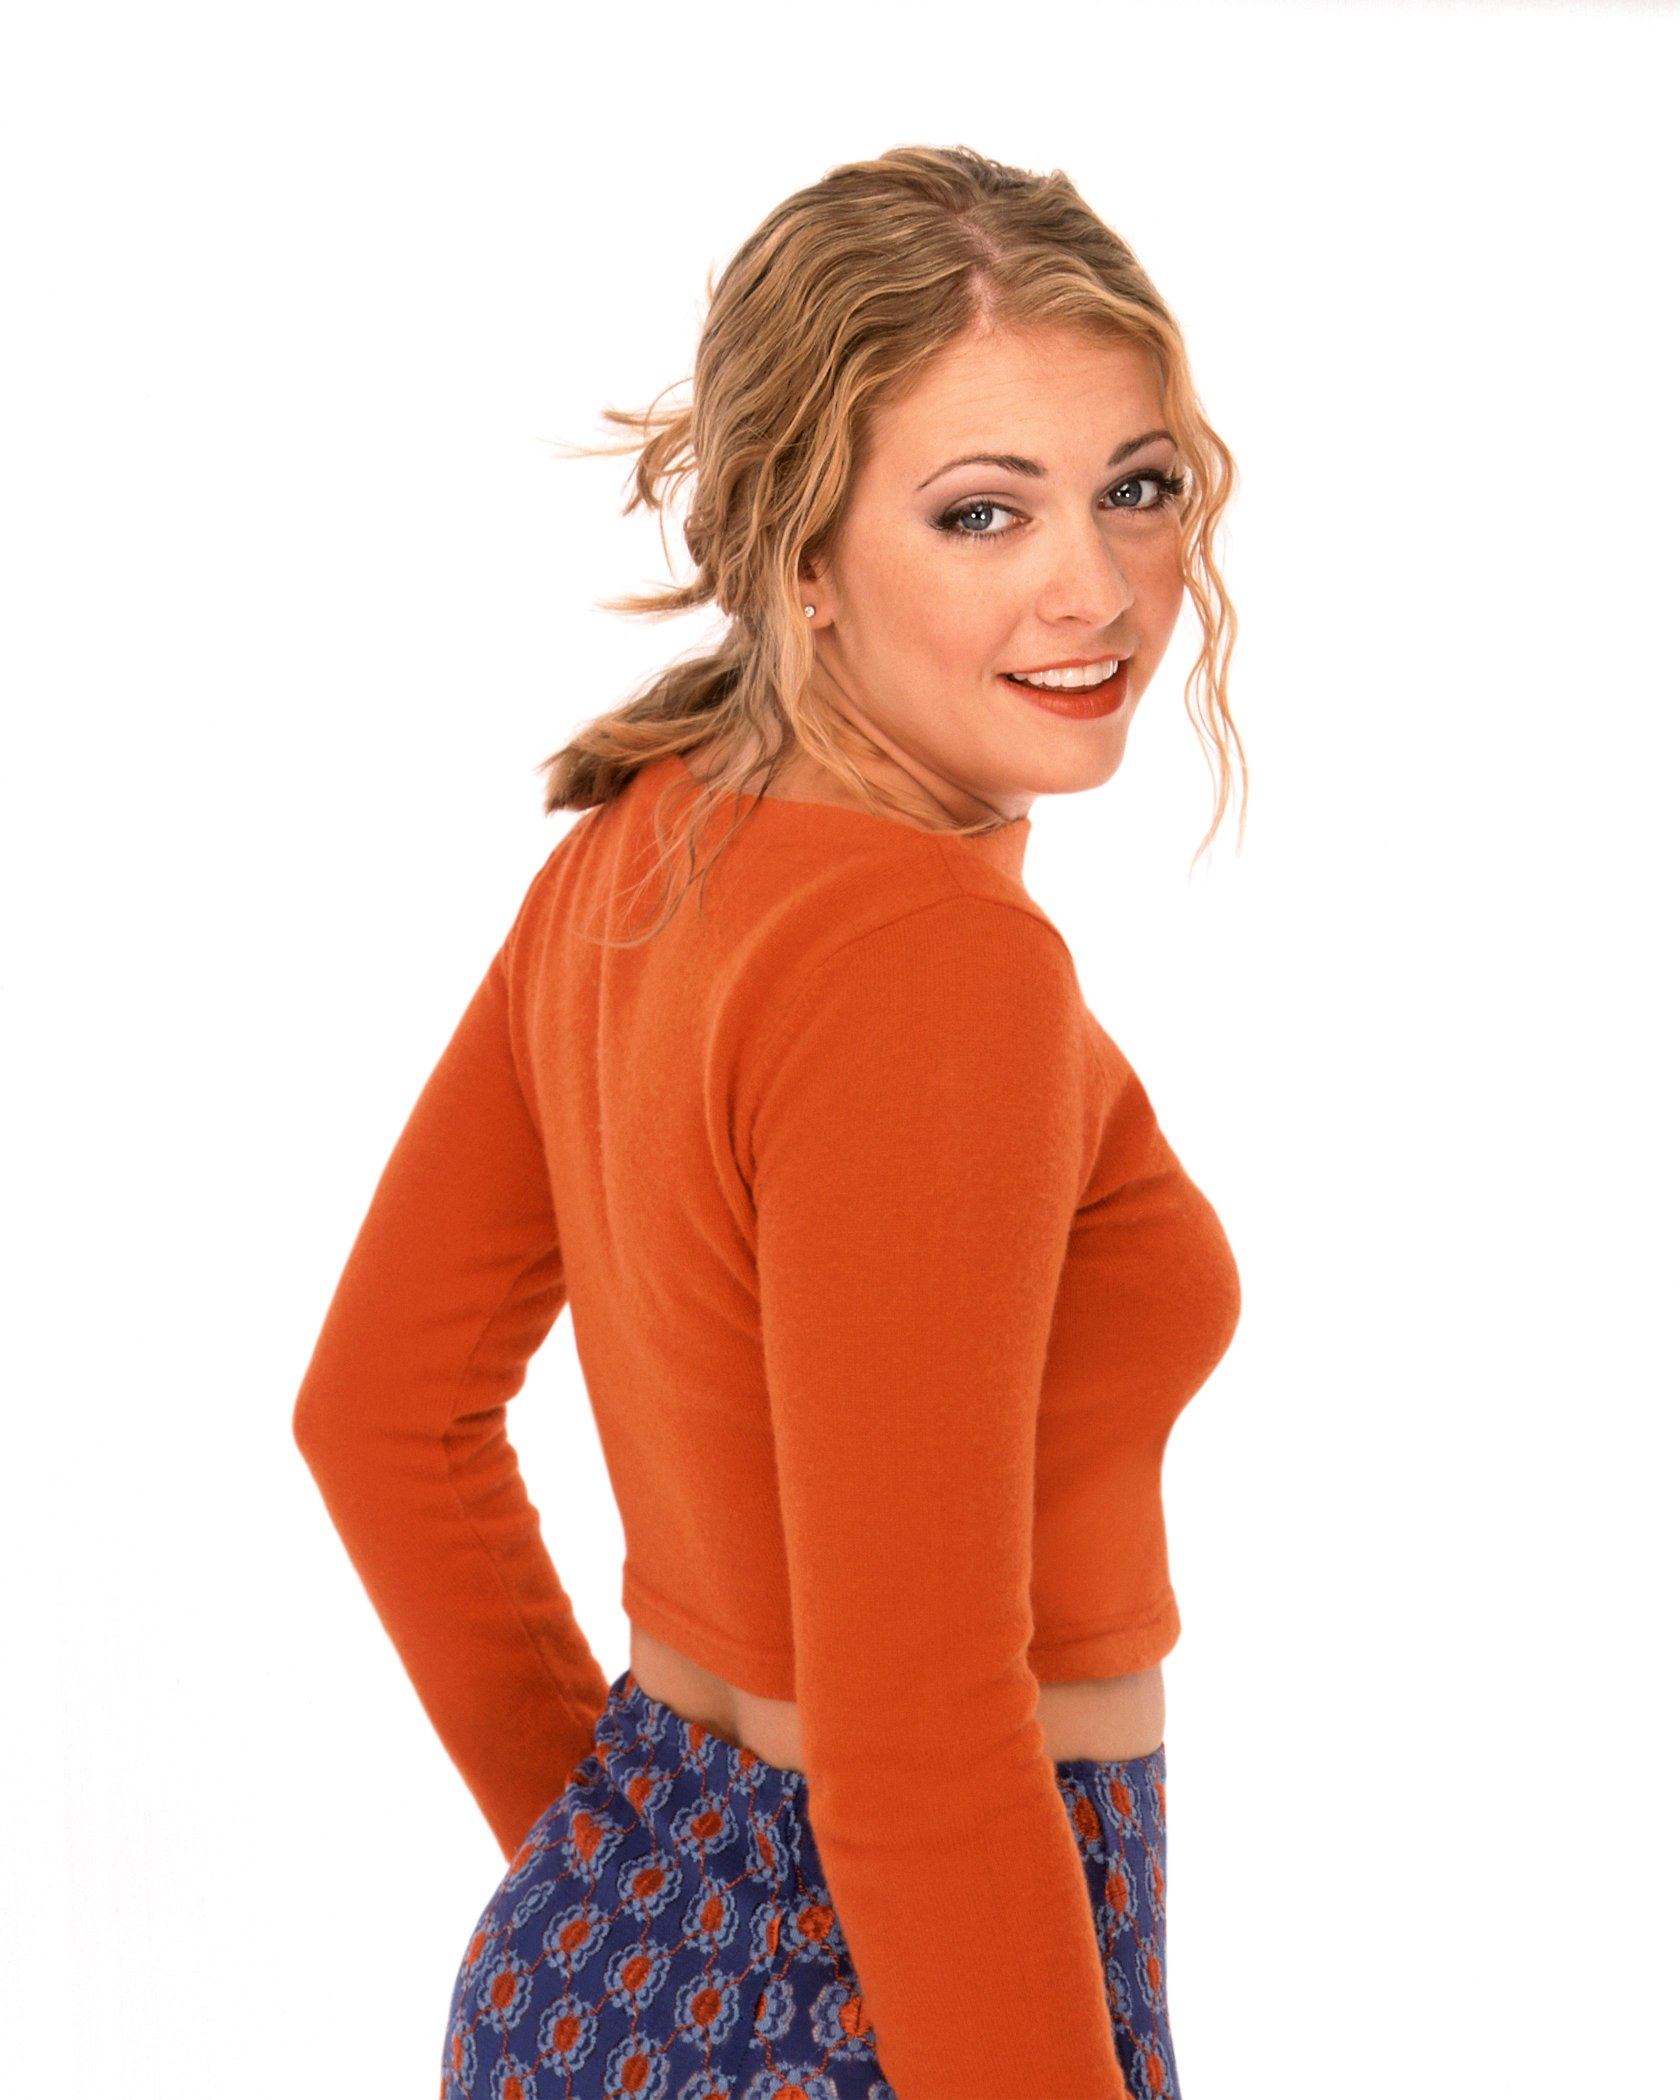 Teen melissa joan hart picture, men peeing naked on a woman